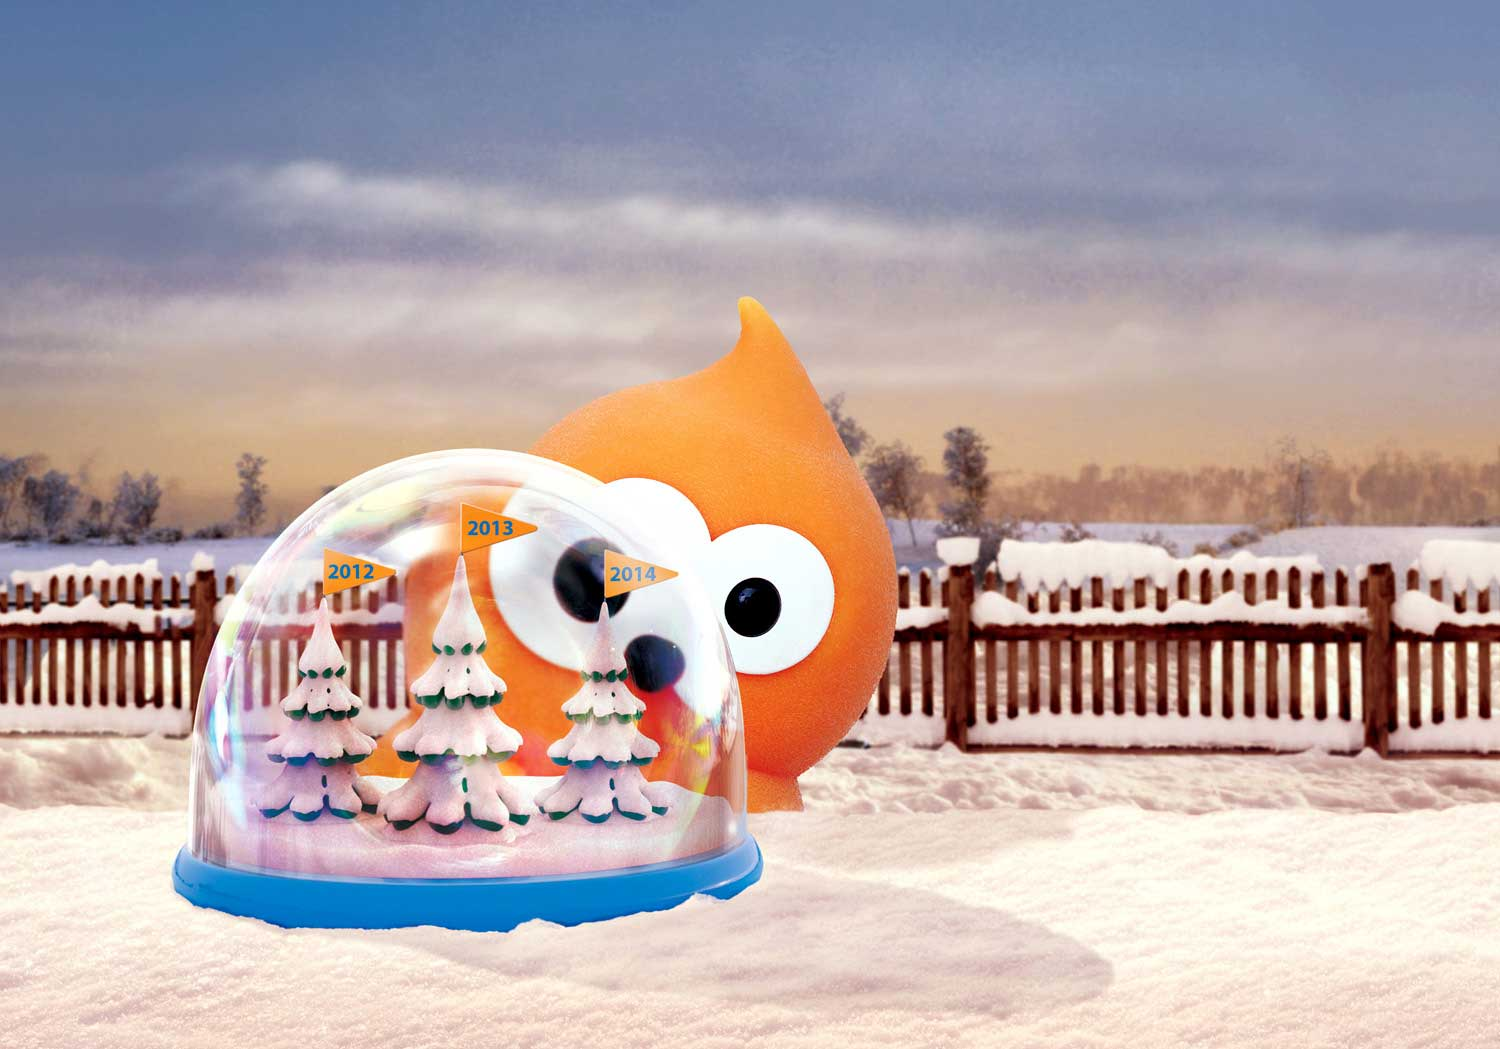 cgi-illustration-zingy character on snowy landscape